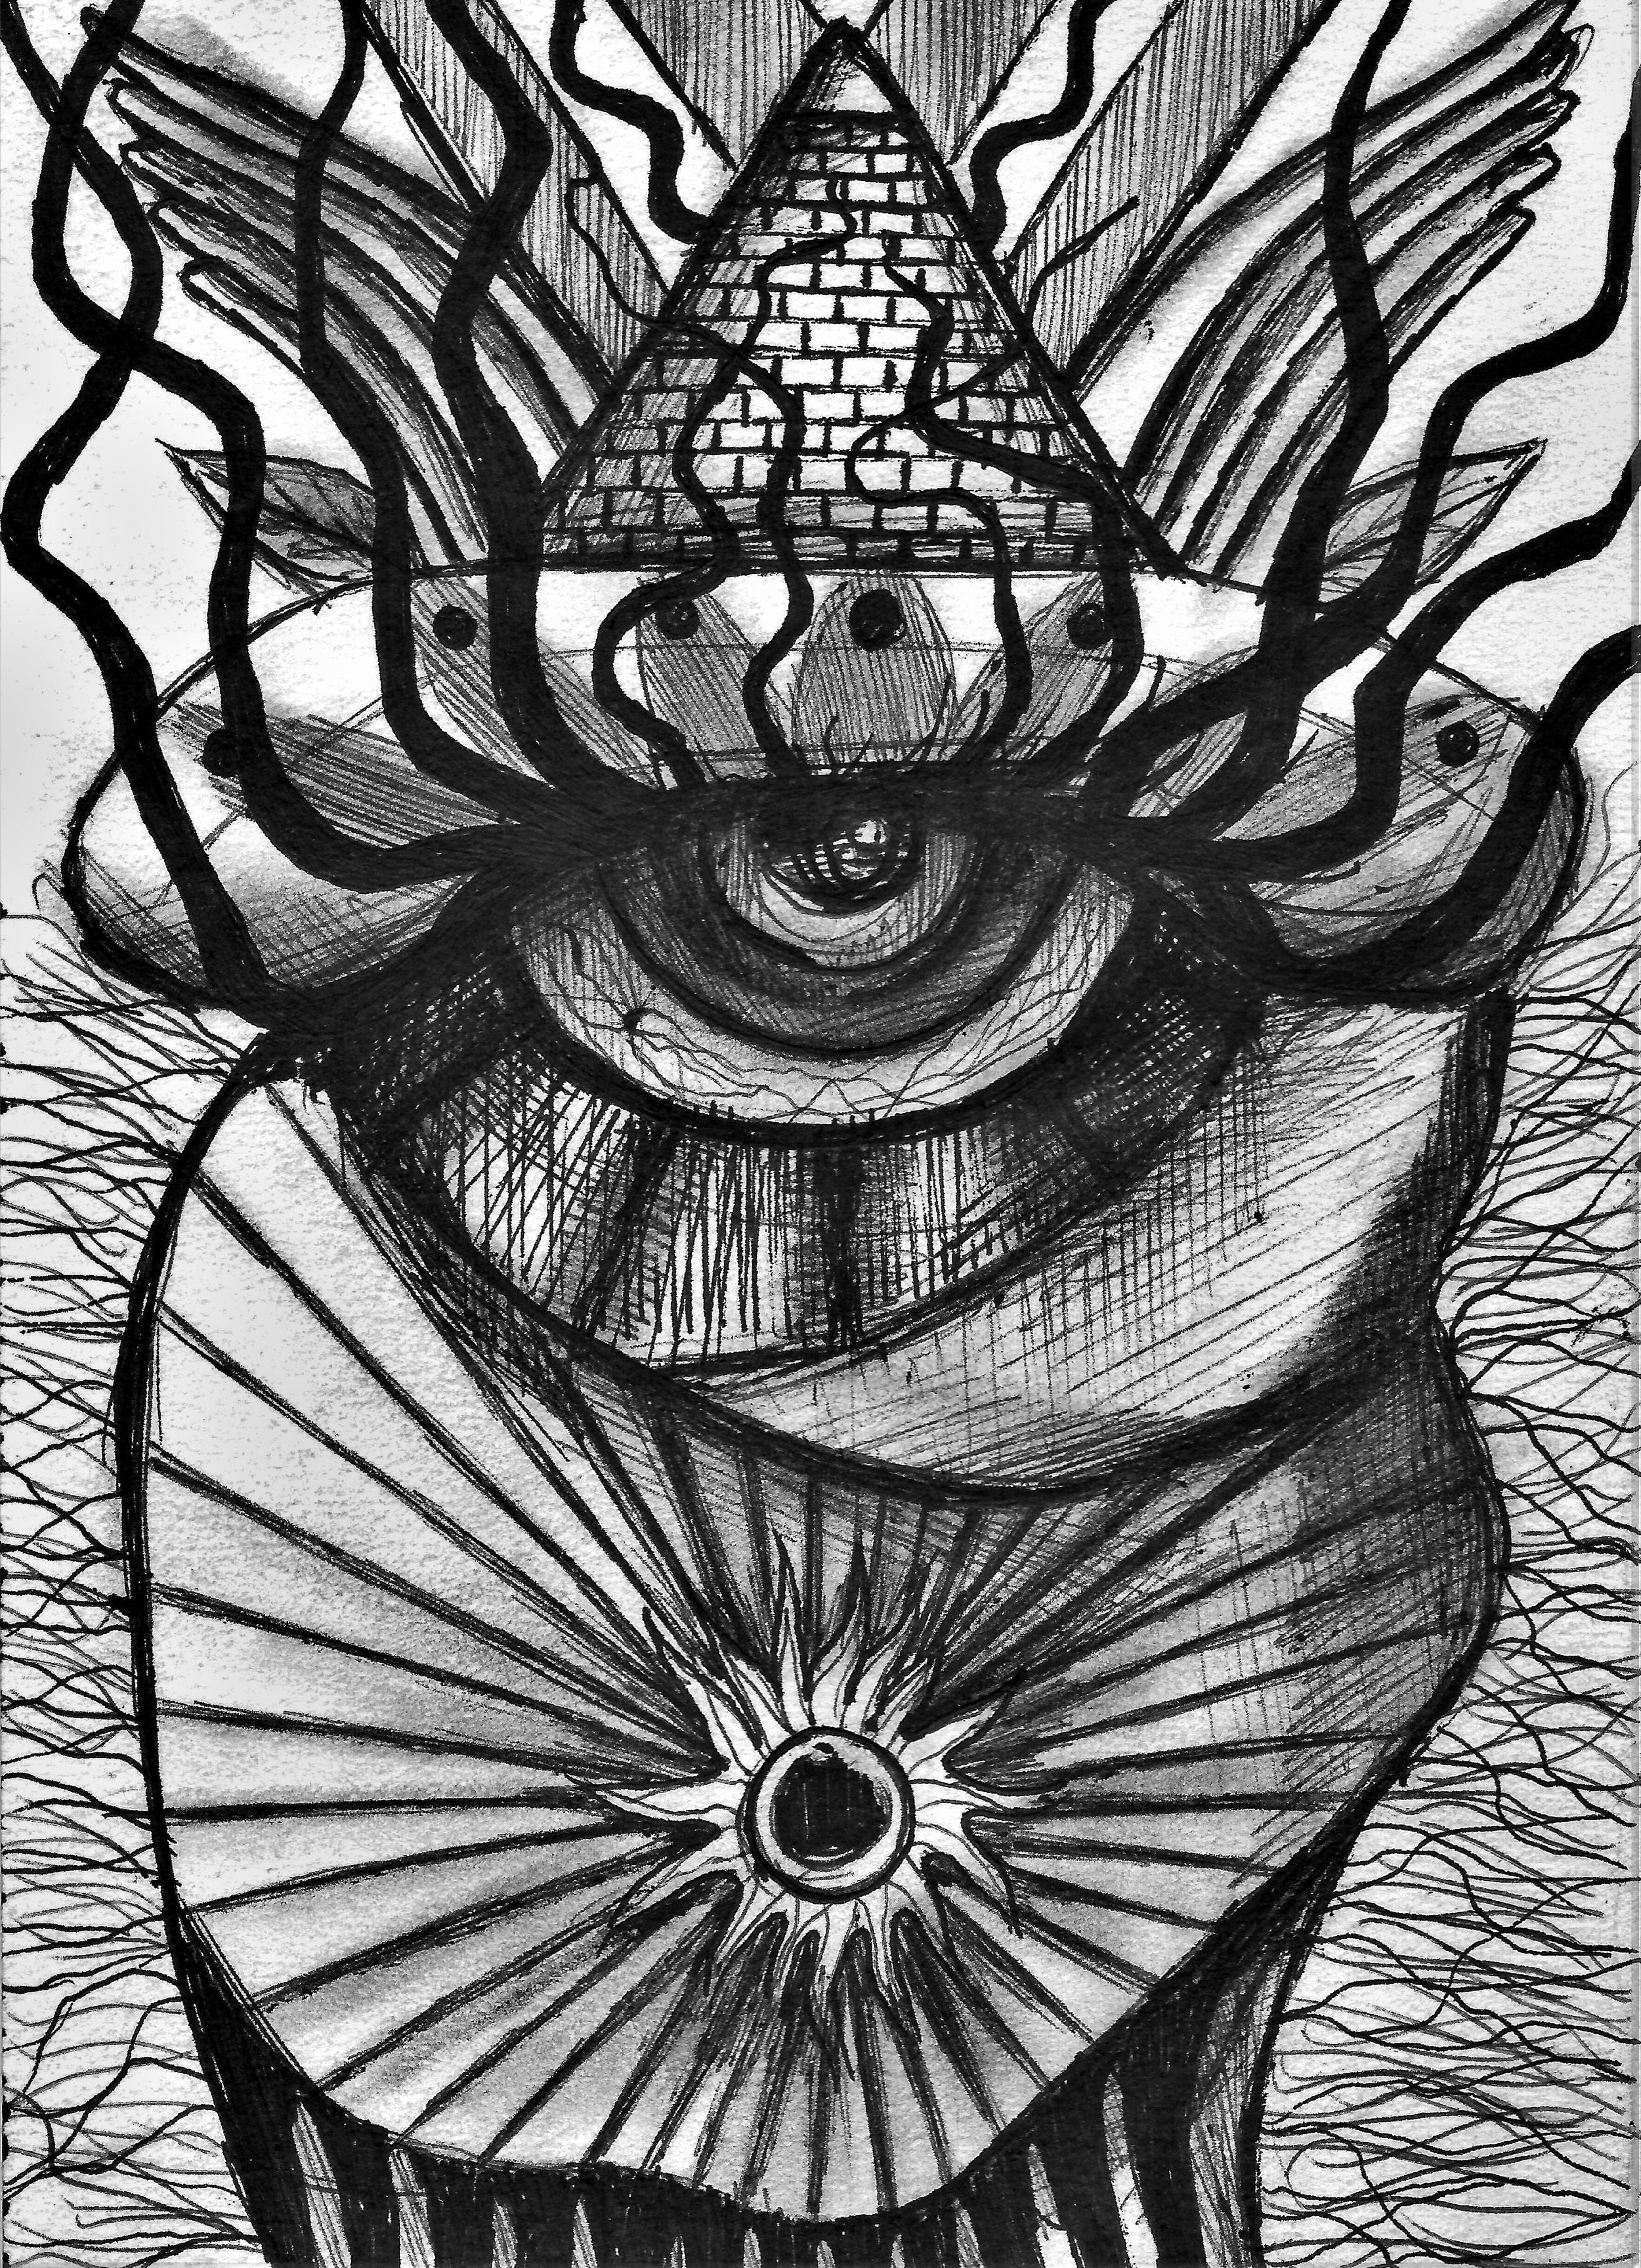 (Third Eye) pen on paper